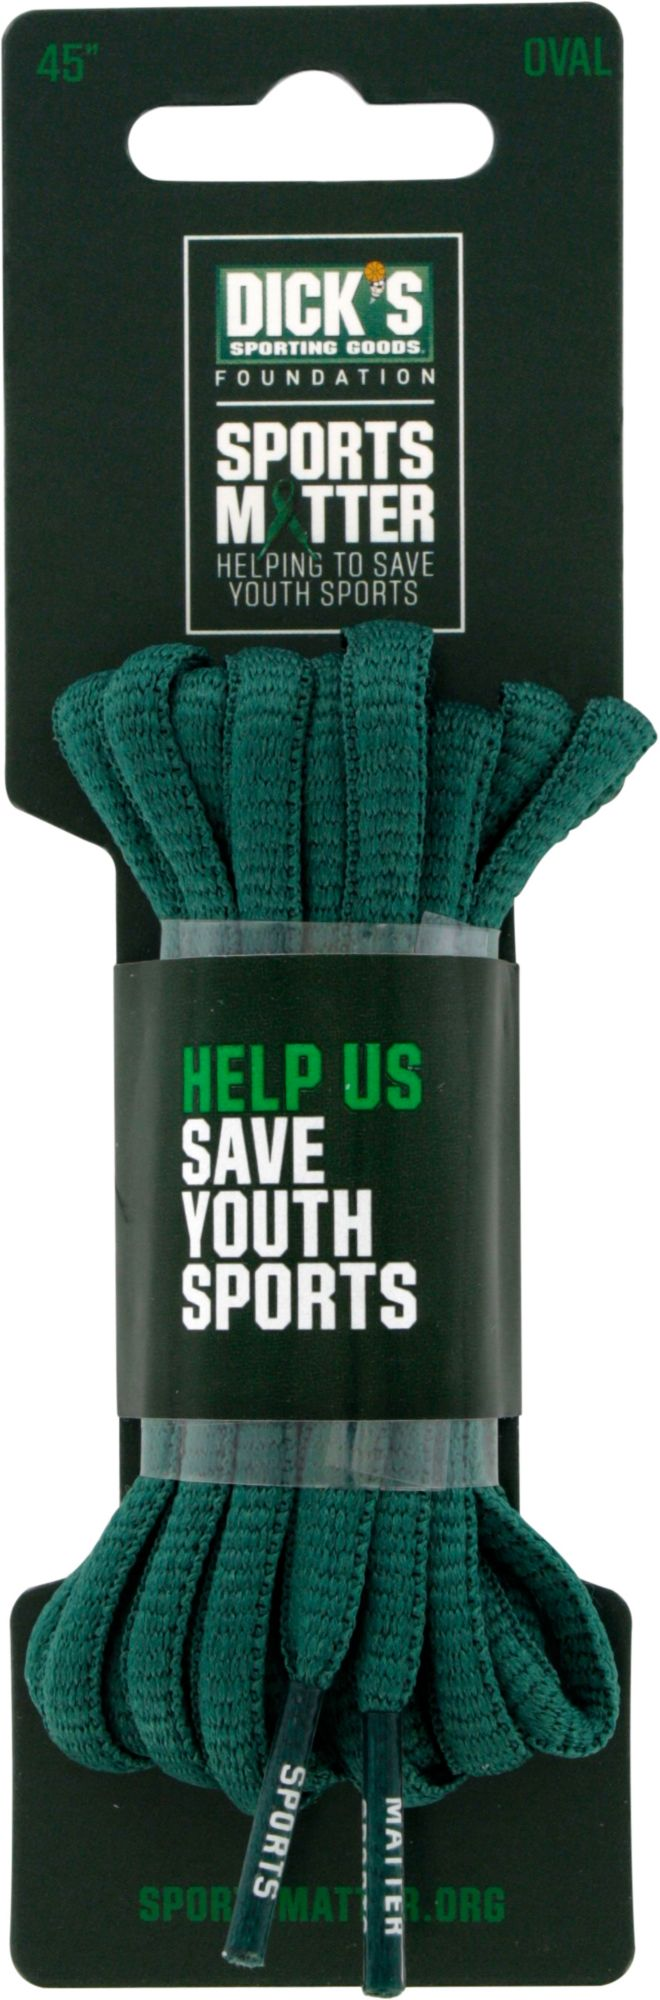 The DICKS Sporting Goods Foundation: Sports Matter Green Oval 45?? Laces DICKS Sporting Goods